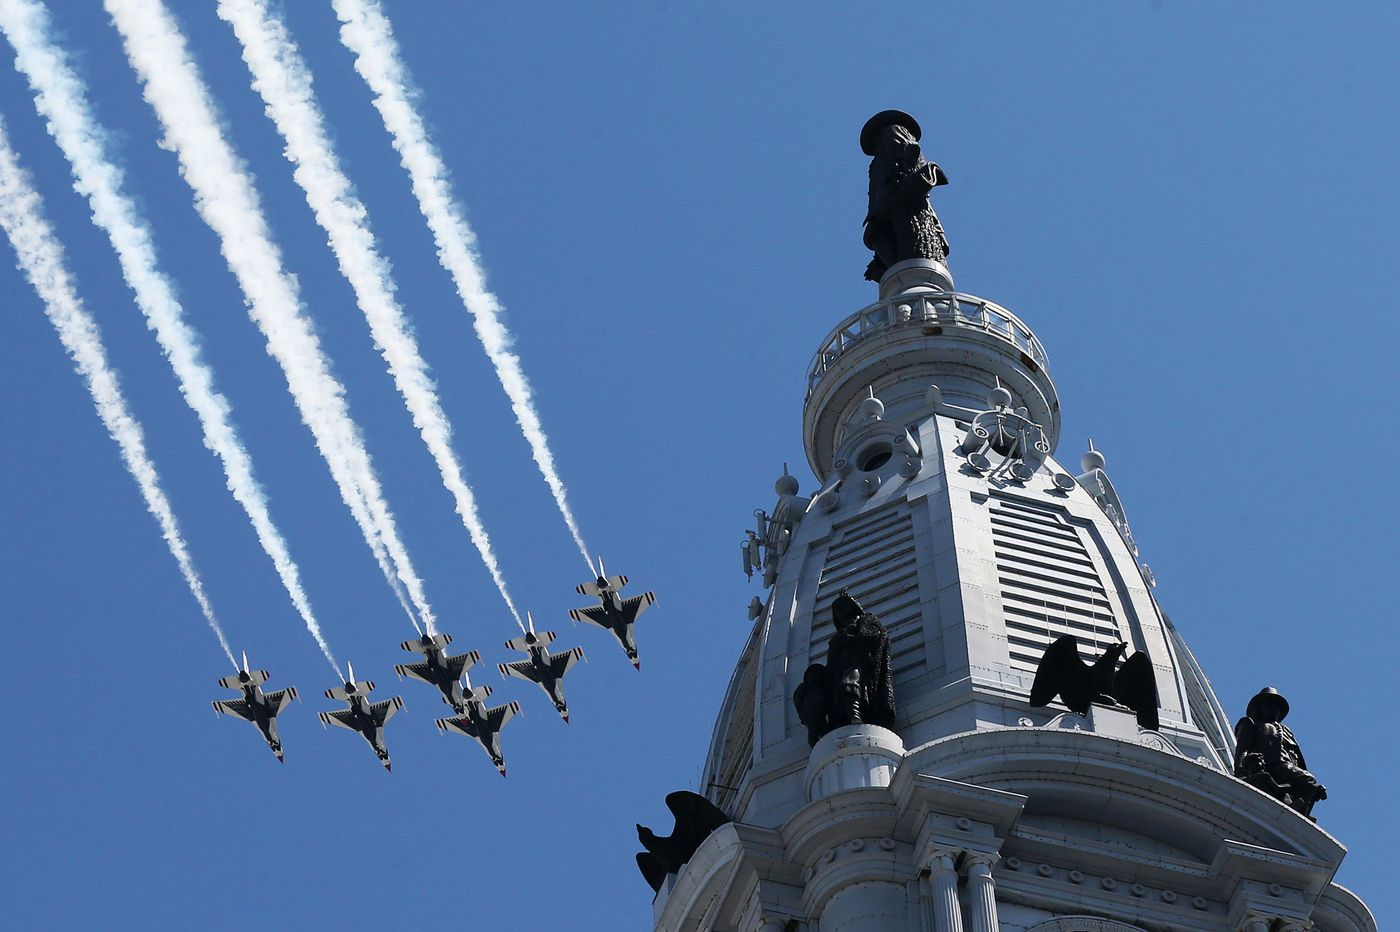 Thunderbirds July 4 flyover: Start time, flight path over Philadelphia, New York, Boston, and Baltimore